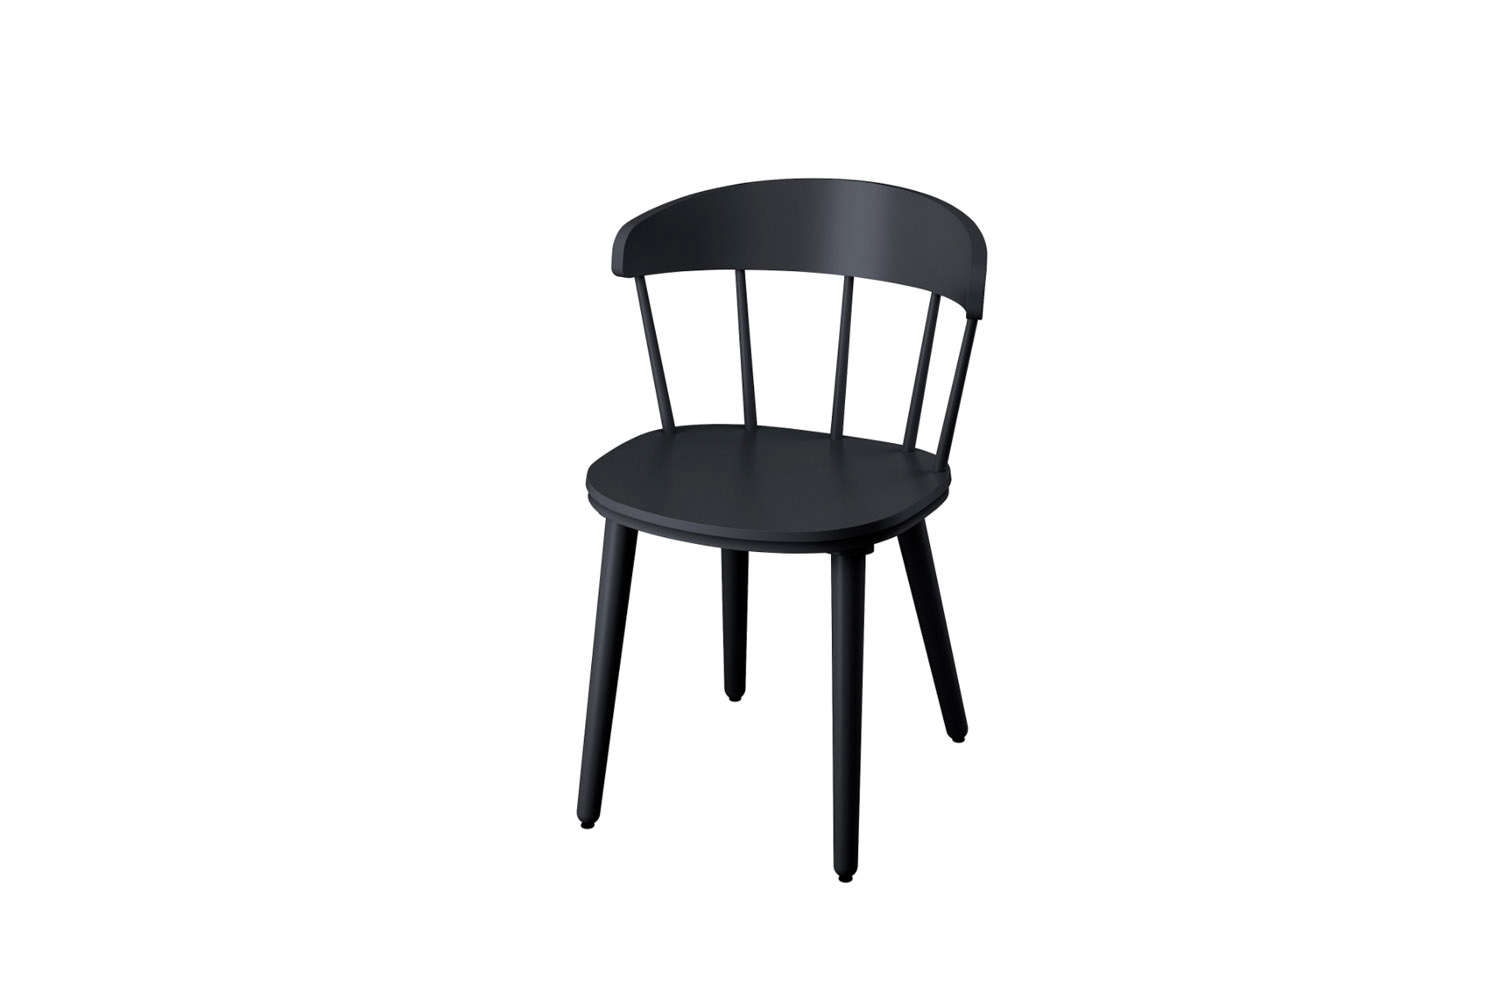 From Ikea, the Omtänksam Chair is $loading=